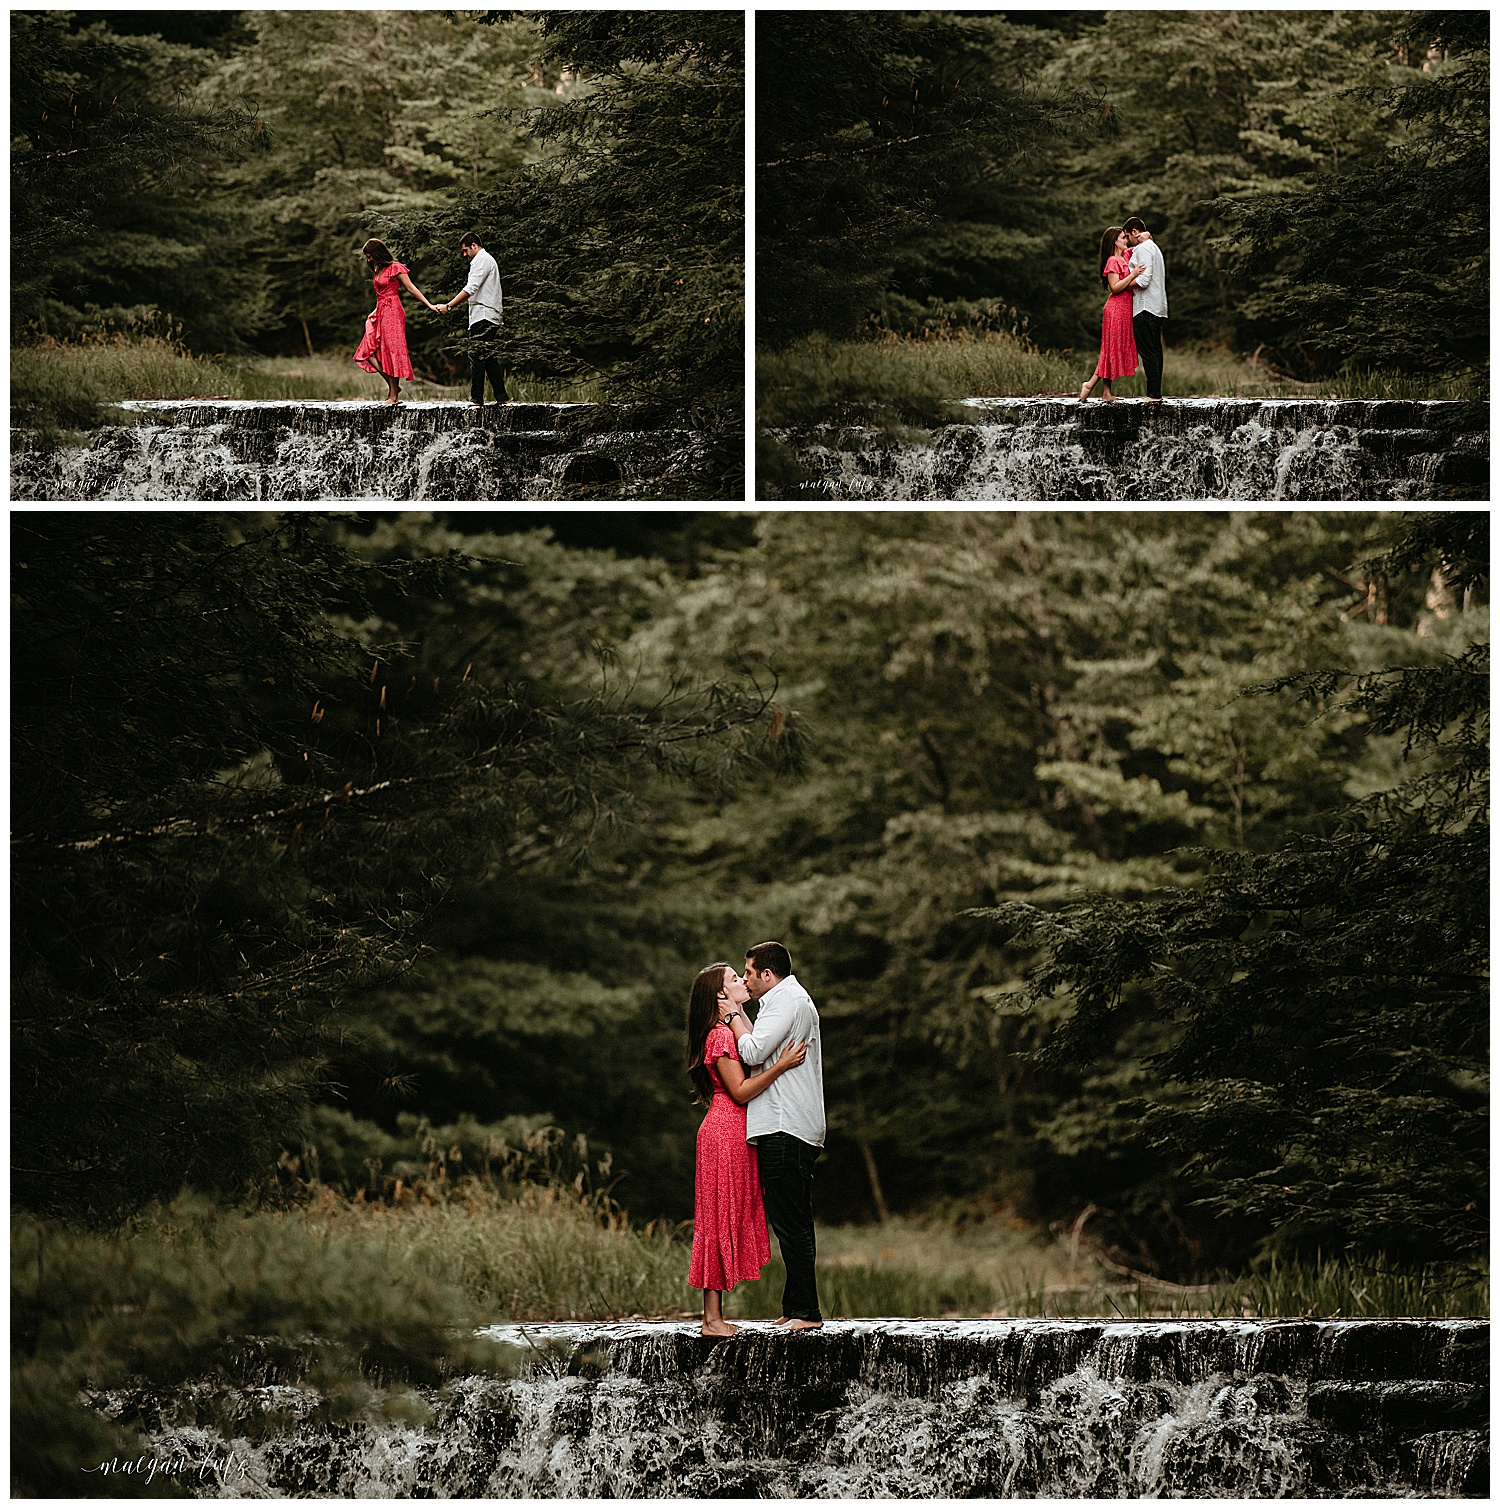 NEPA-Mount-Pocono-Lehigh-Valley-Wedding-Engagement-photographer-at-Hickory-Run-State-Park-Whitehaven-PA_0007.jpg